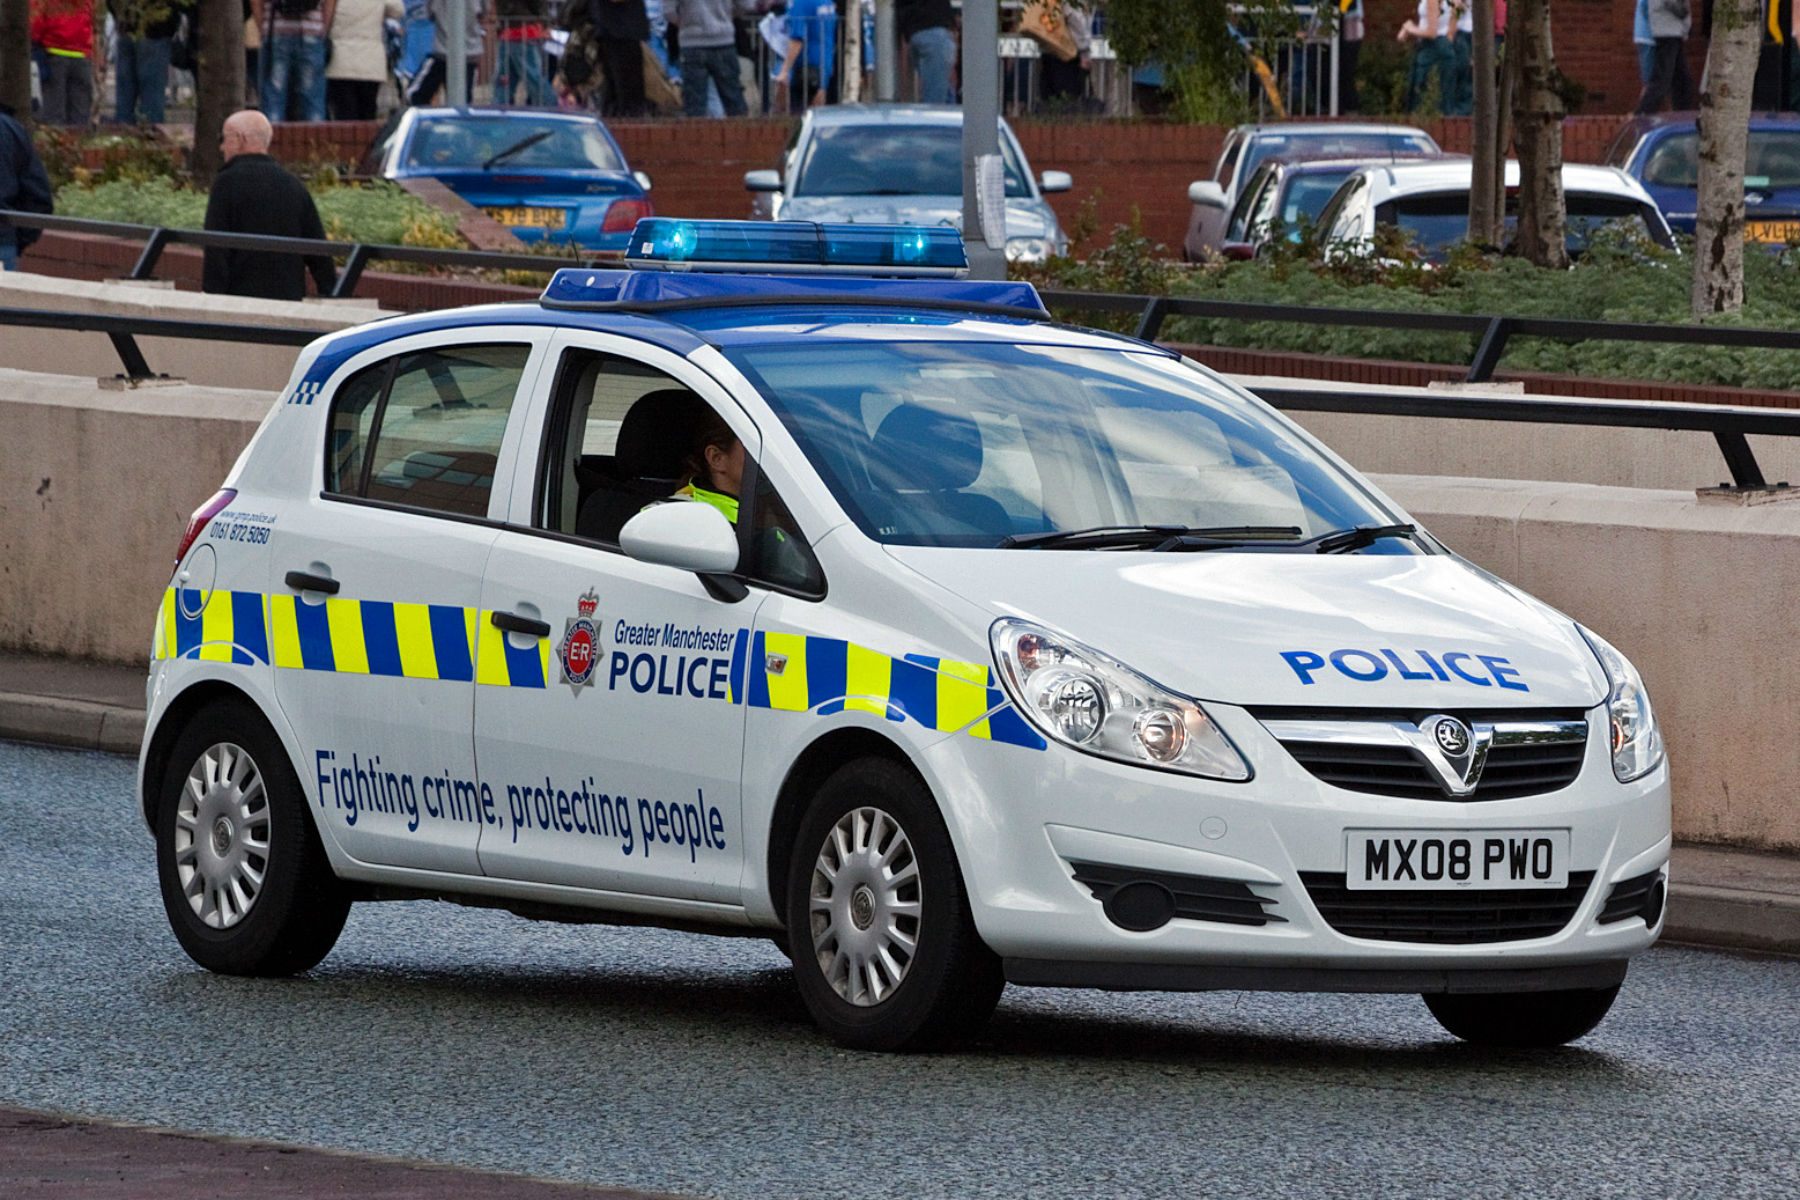 Police forced to respond to 999 calls without sirens